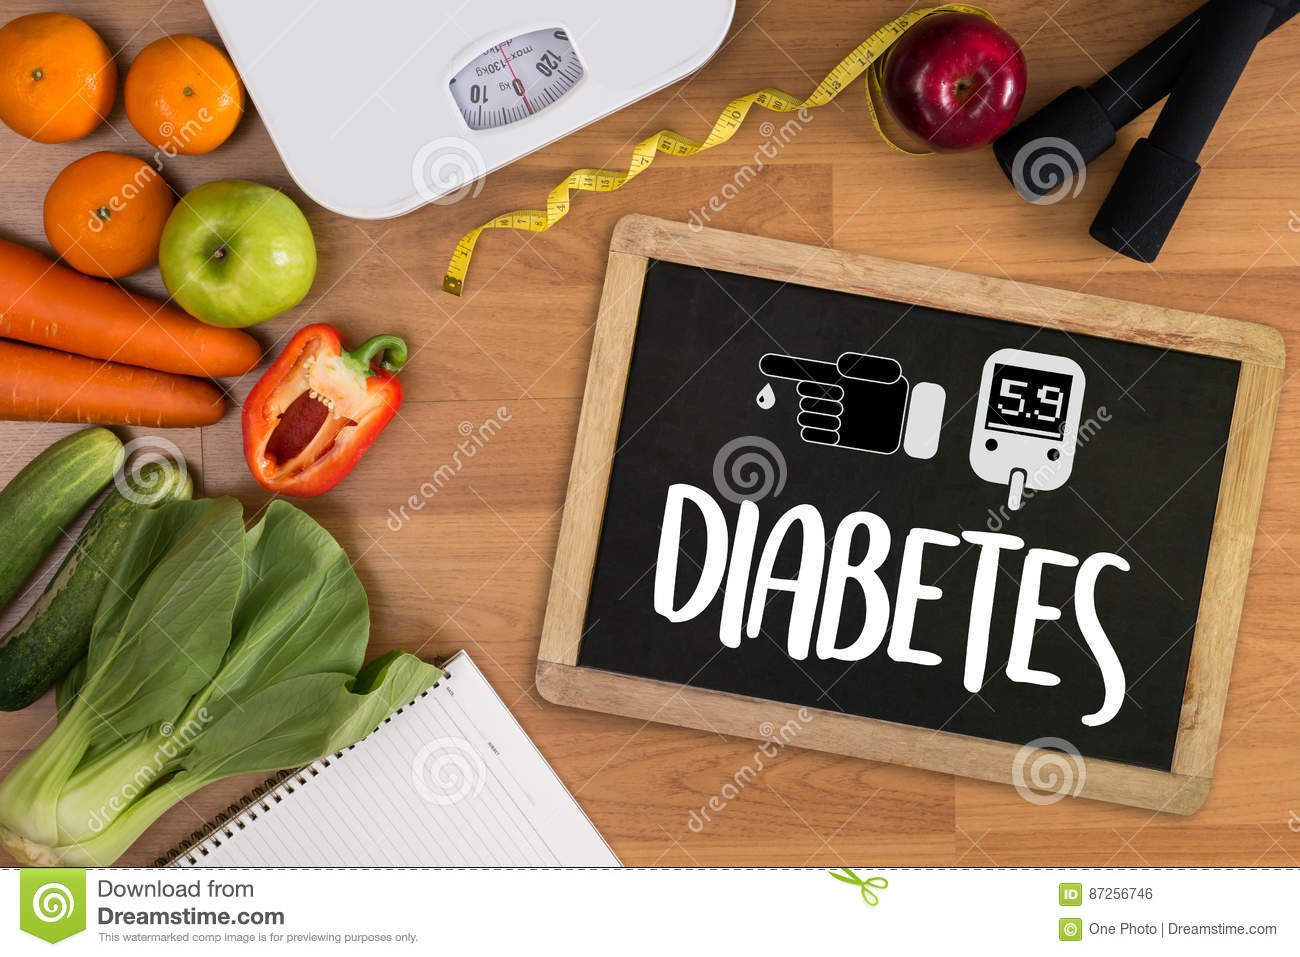 a diabetes test, health Medical Concept , Obesity , blood test